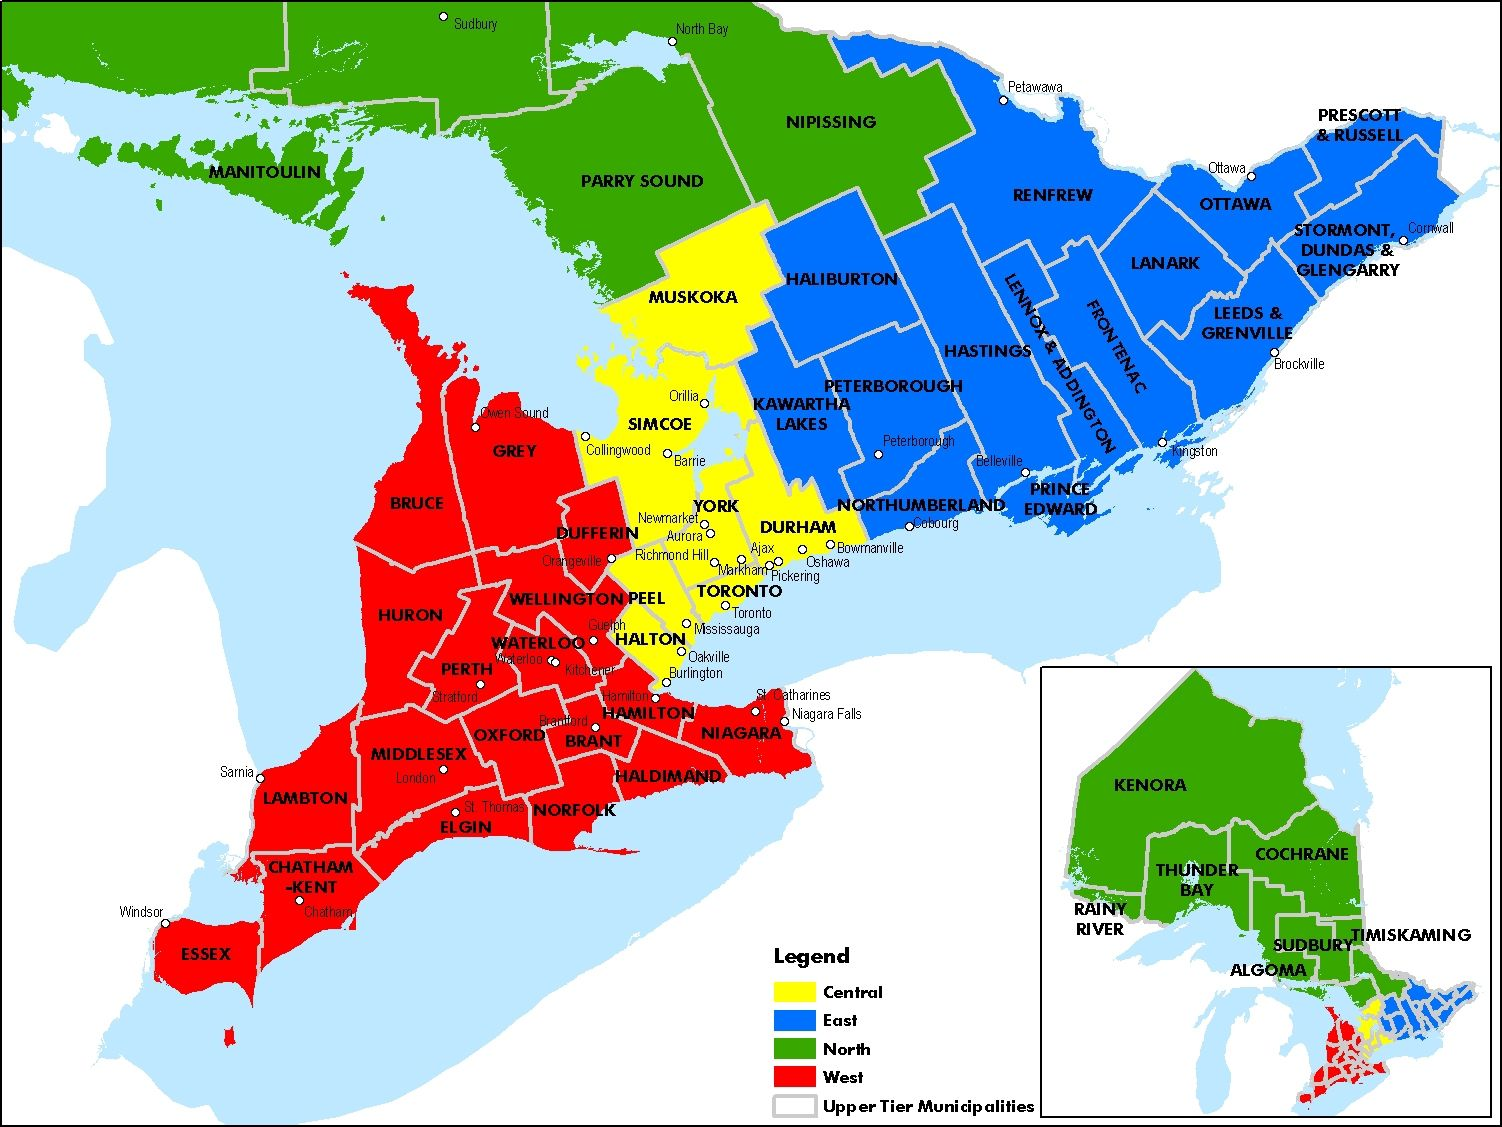 Ontario Counties Map Map of Ontario |  map of ontario counties and regions click the  Ontario Counties Map